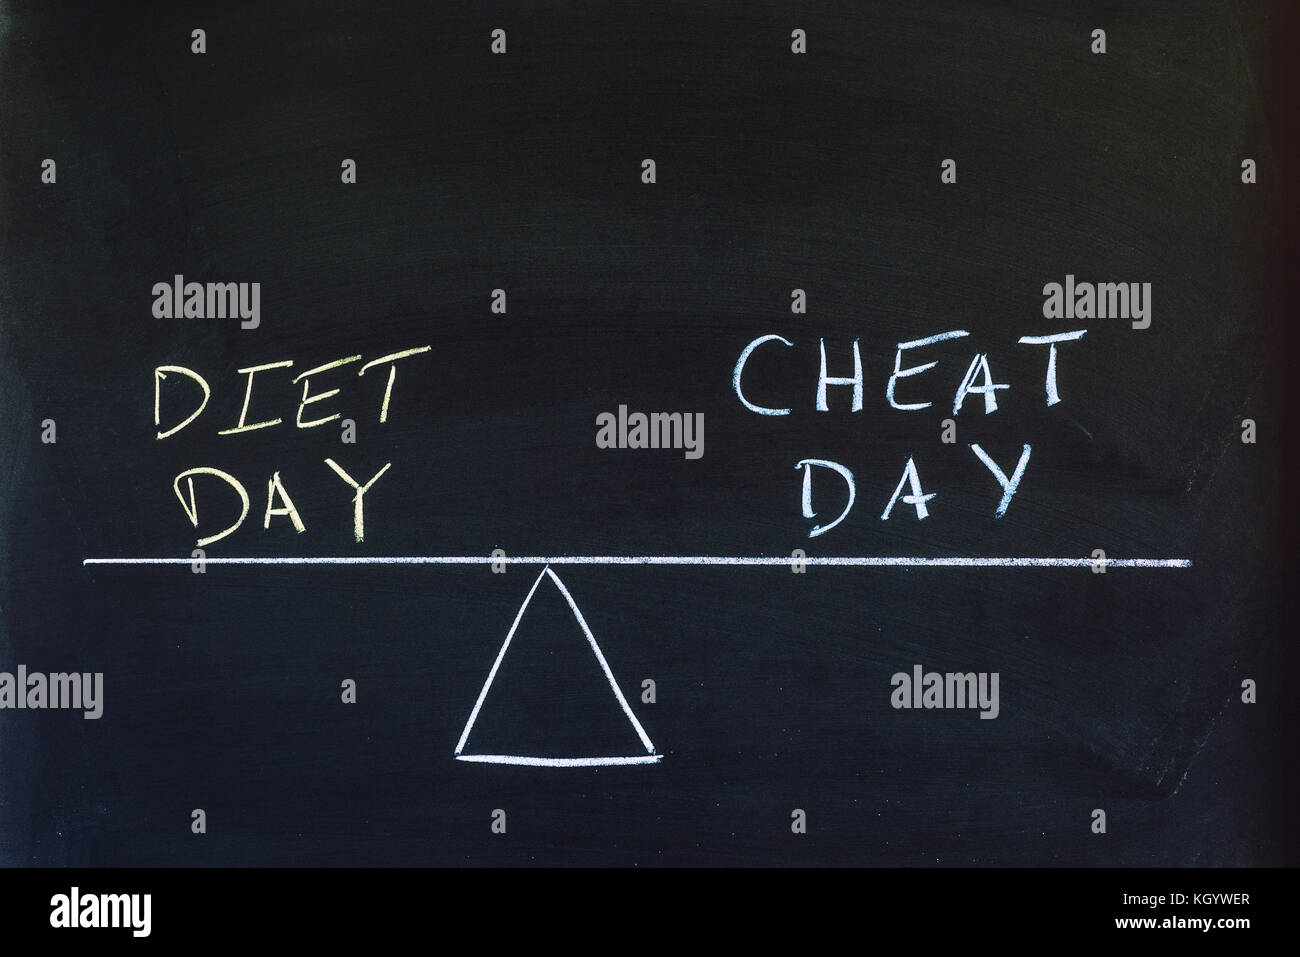 The words Diet Day and Cheat Day on a balance scale. - Stock Image